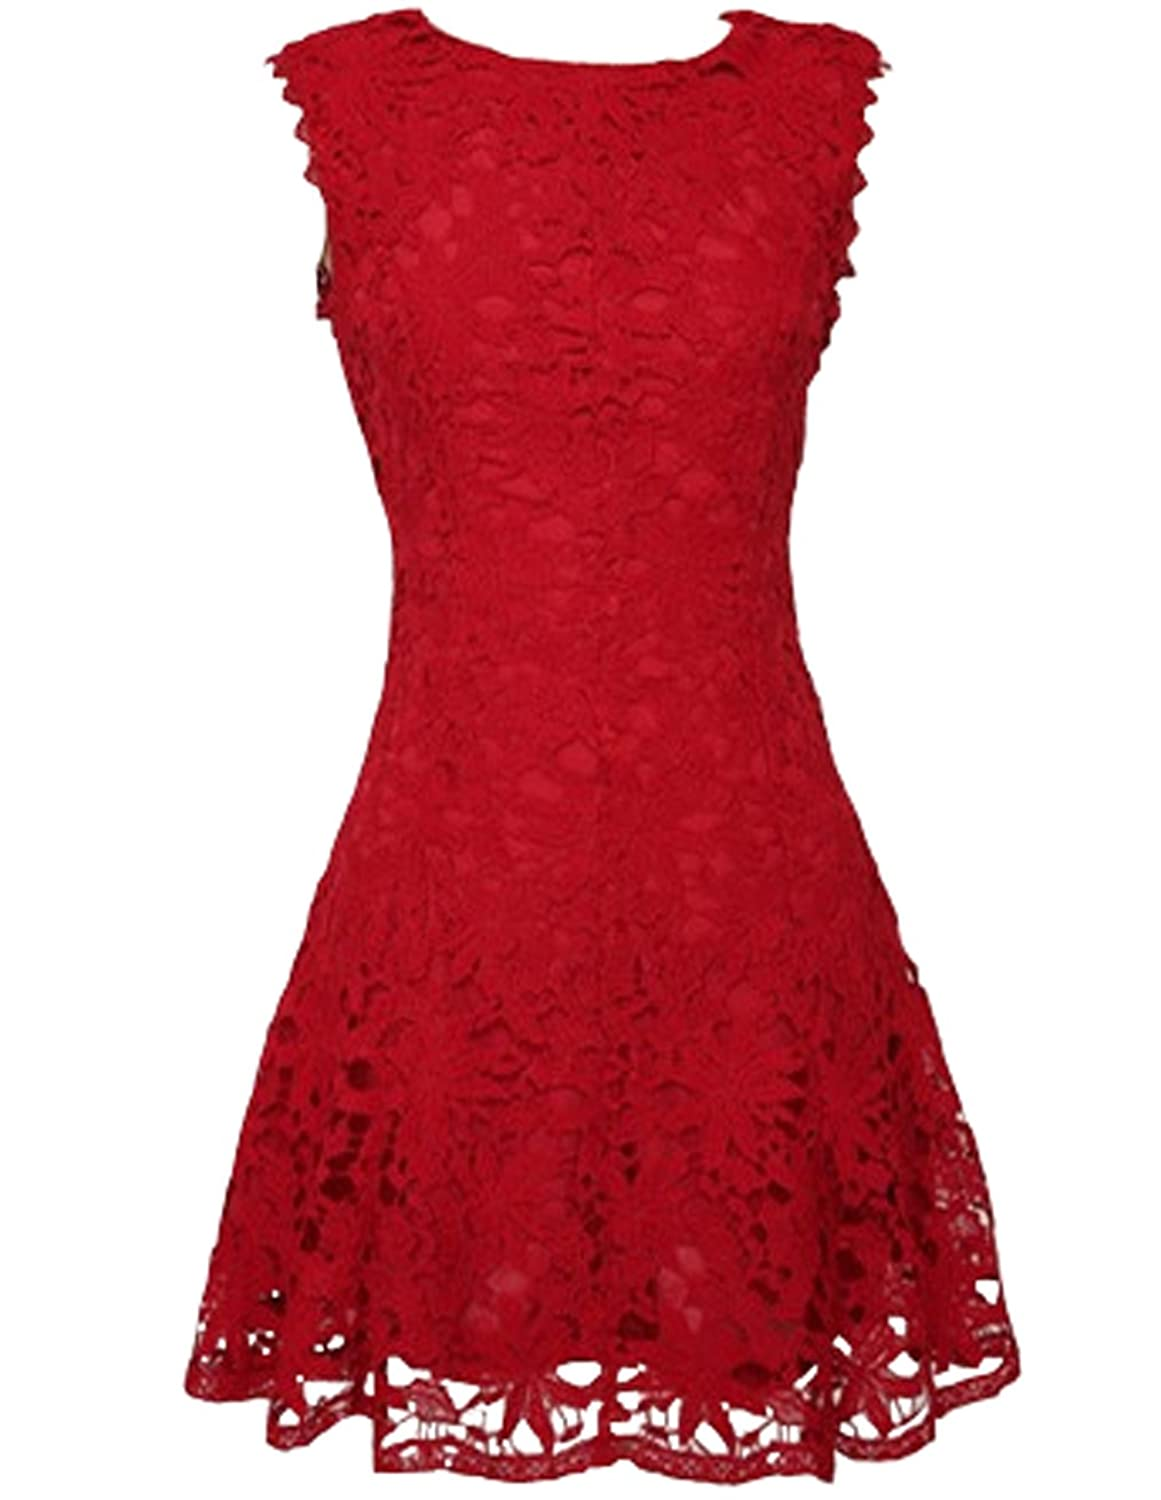 Great Bright Women's A-Line Sleeveless Dress red red 10